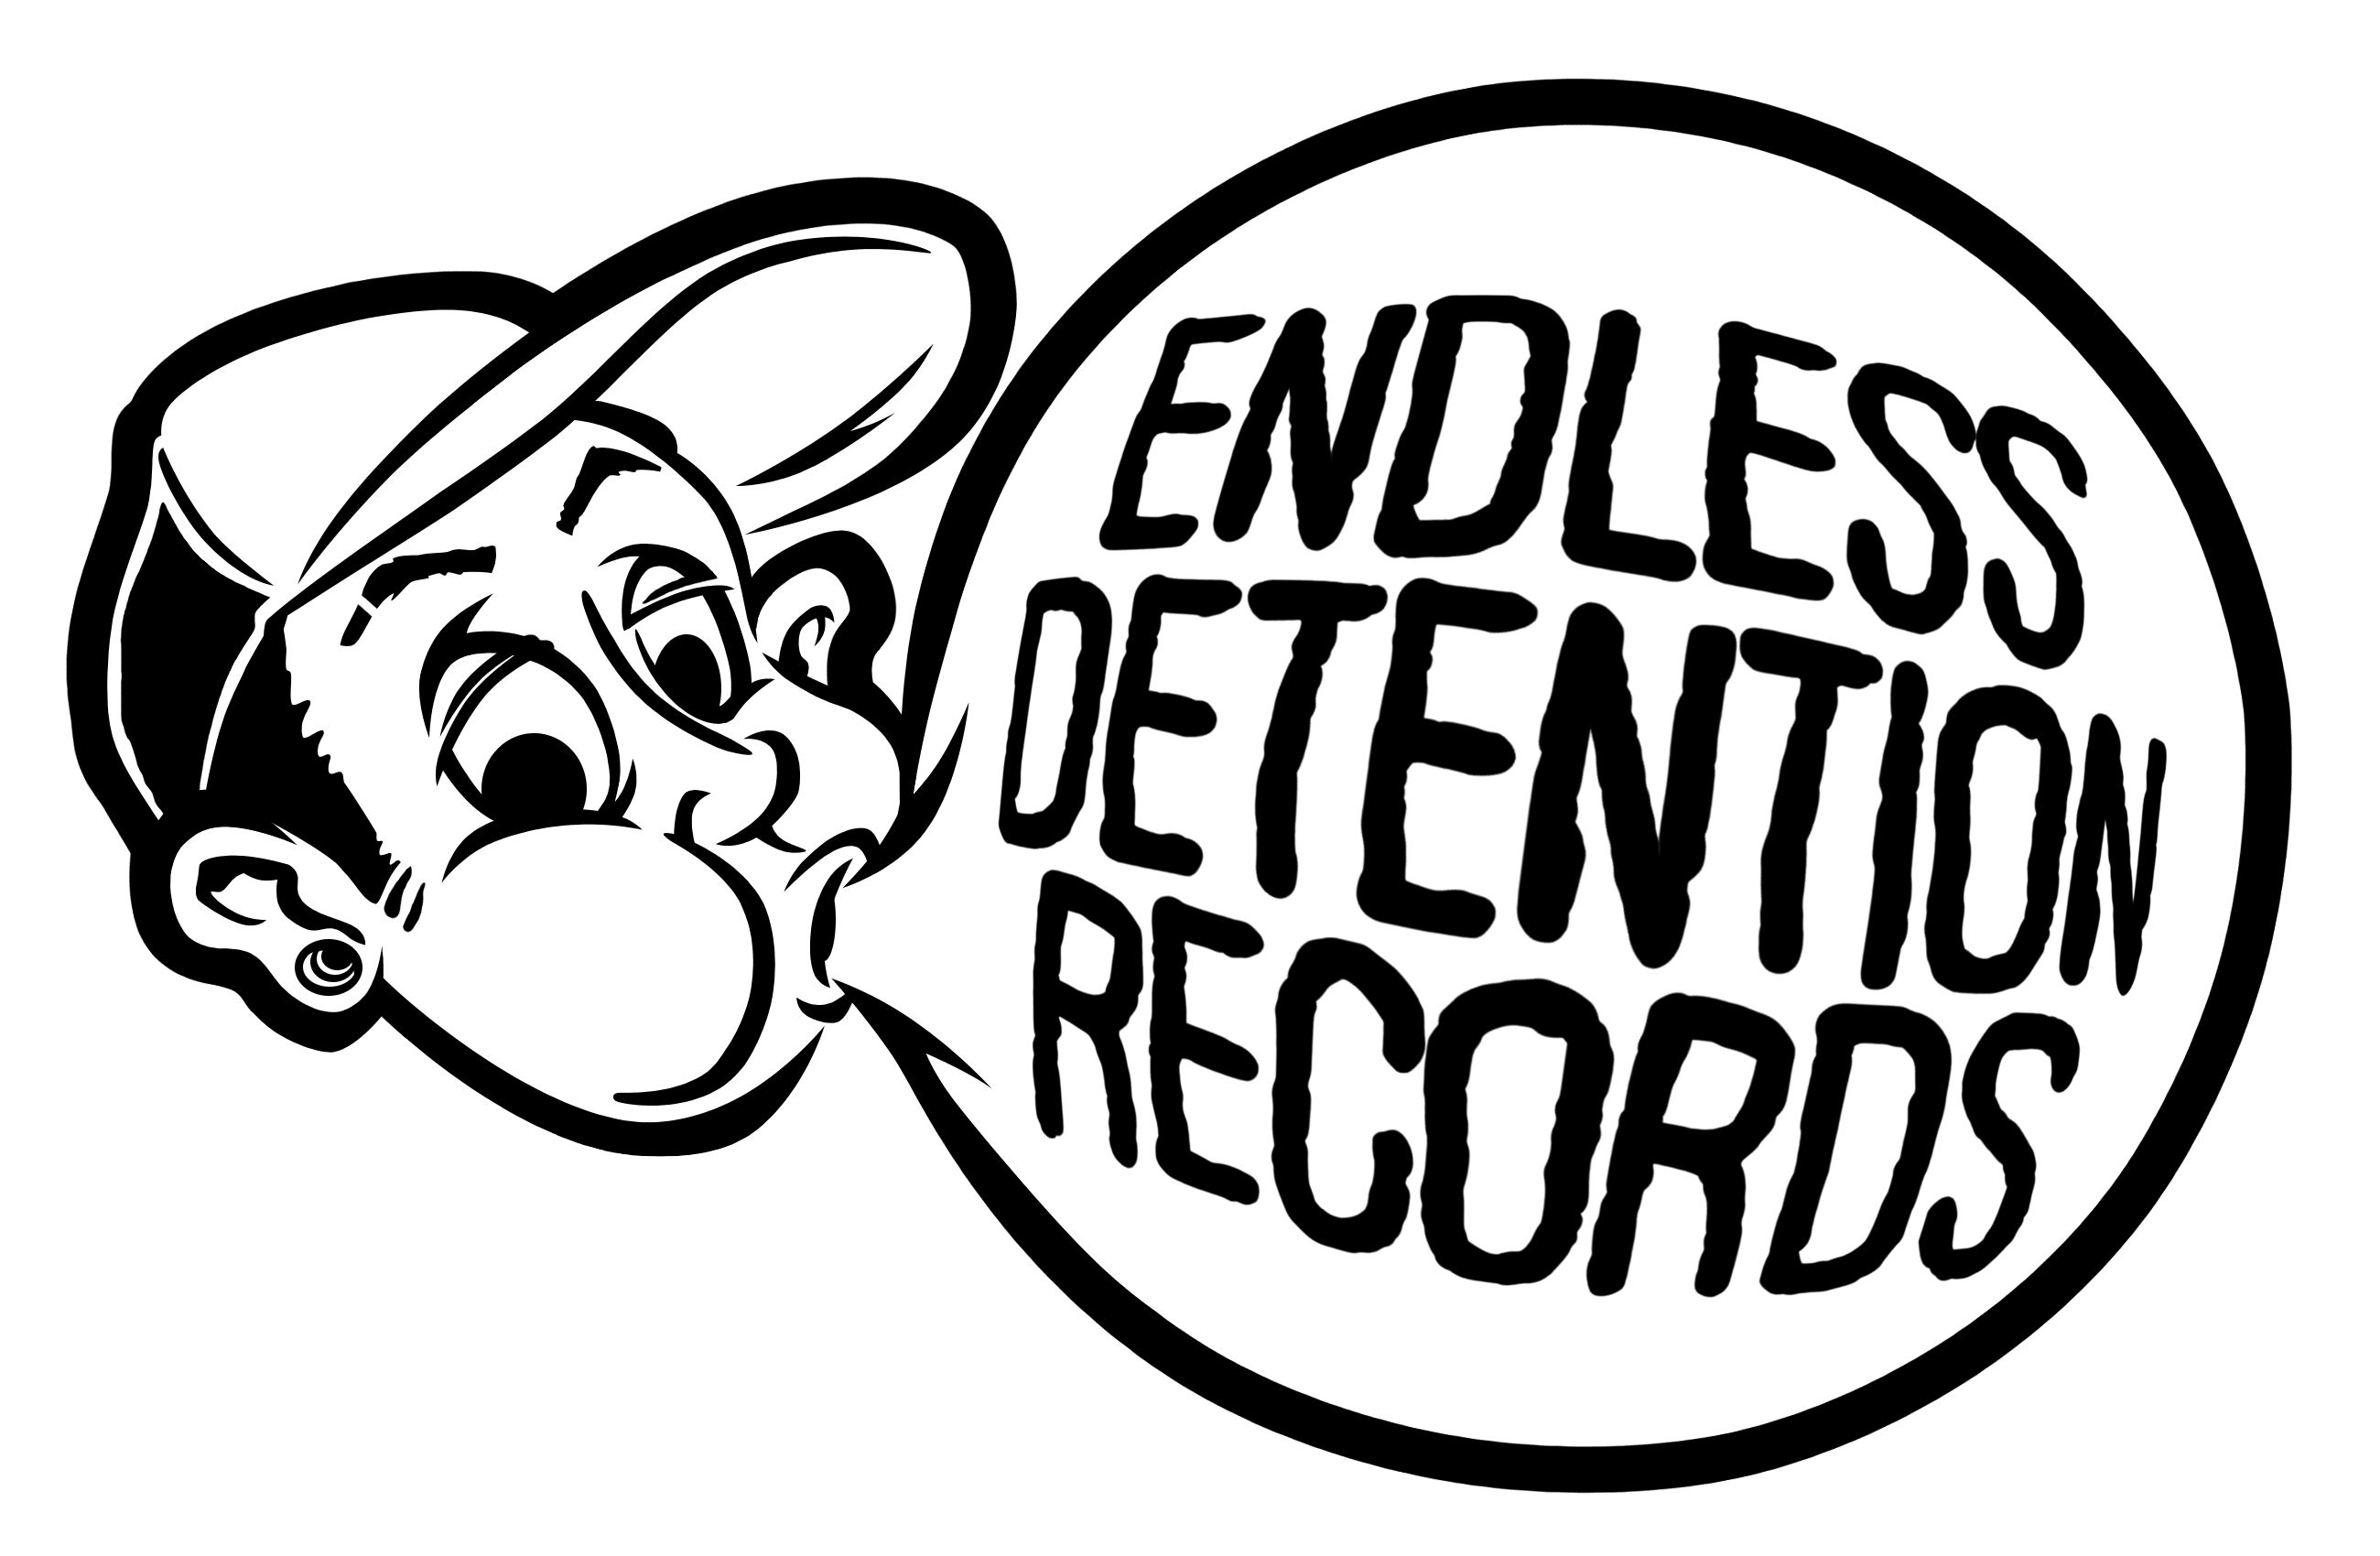 Endless Detention Records